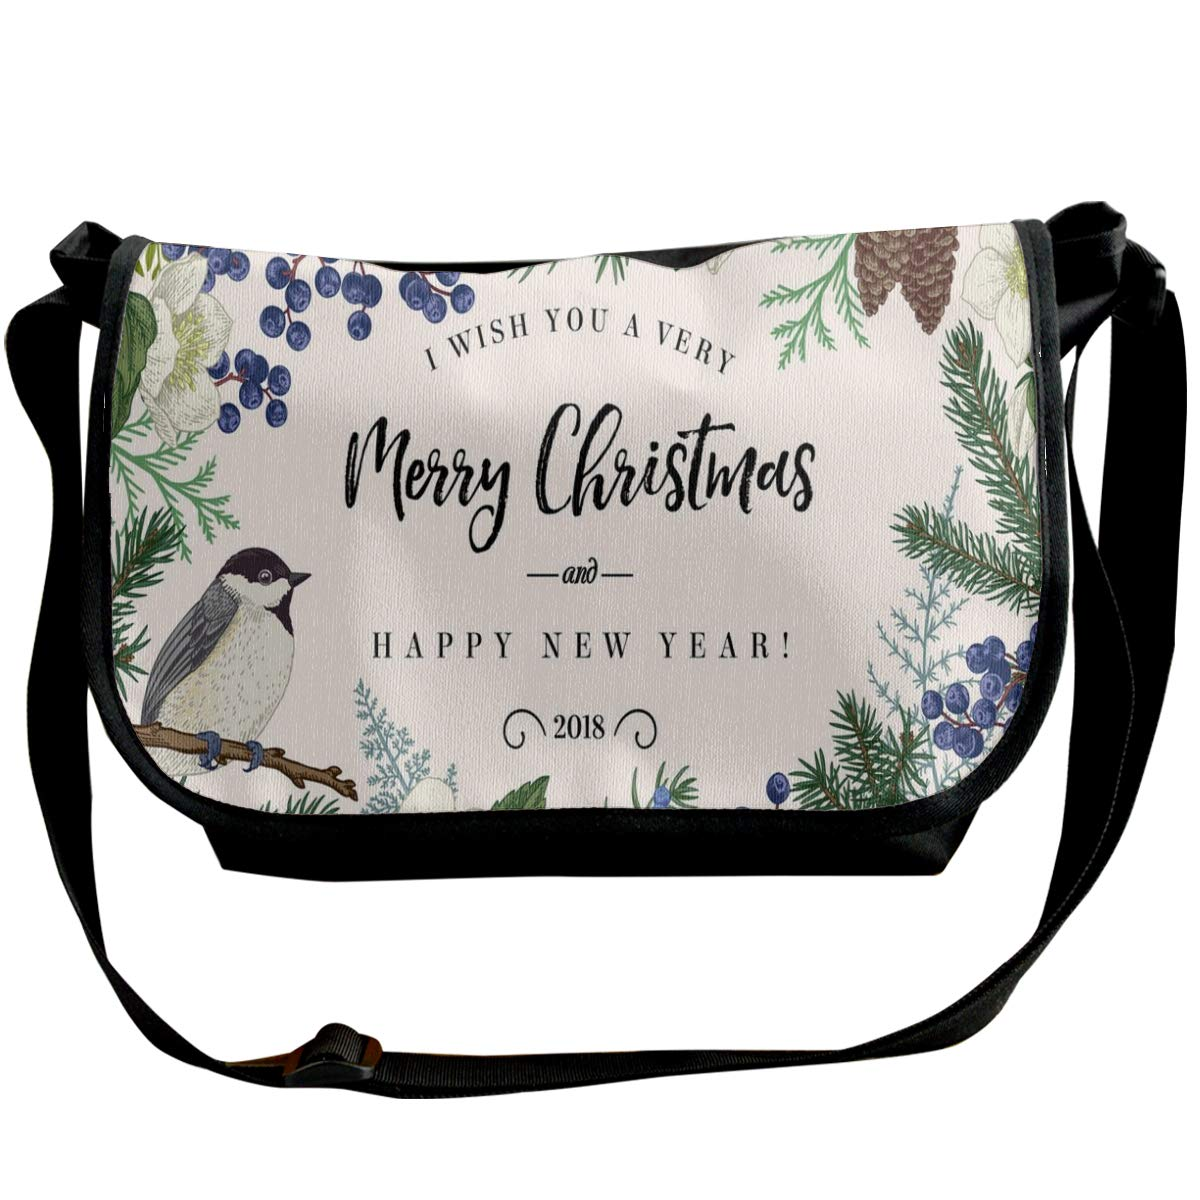 Taslilye Christmas Card With Bird Vector Image Customized Wide Crossbody Shoulder Bag For Men And Women For Daily Work Or Travel